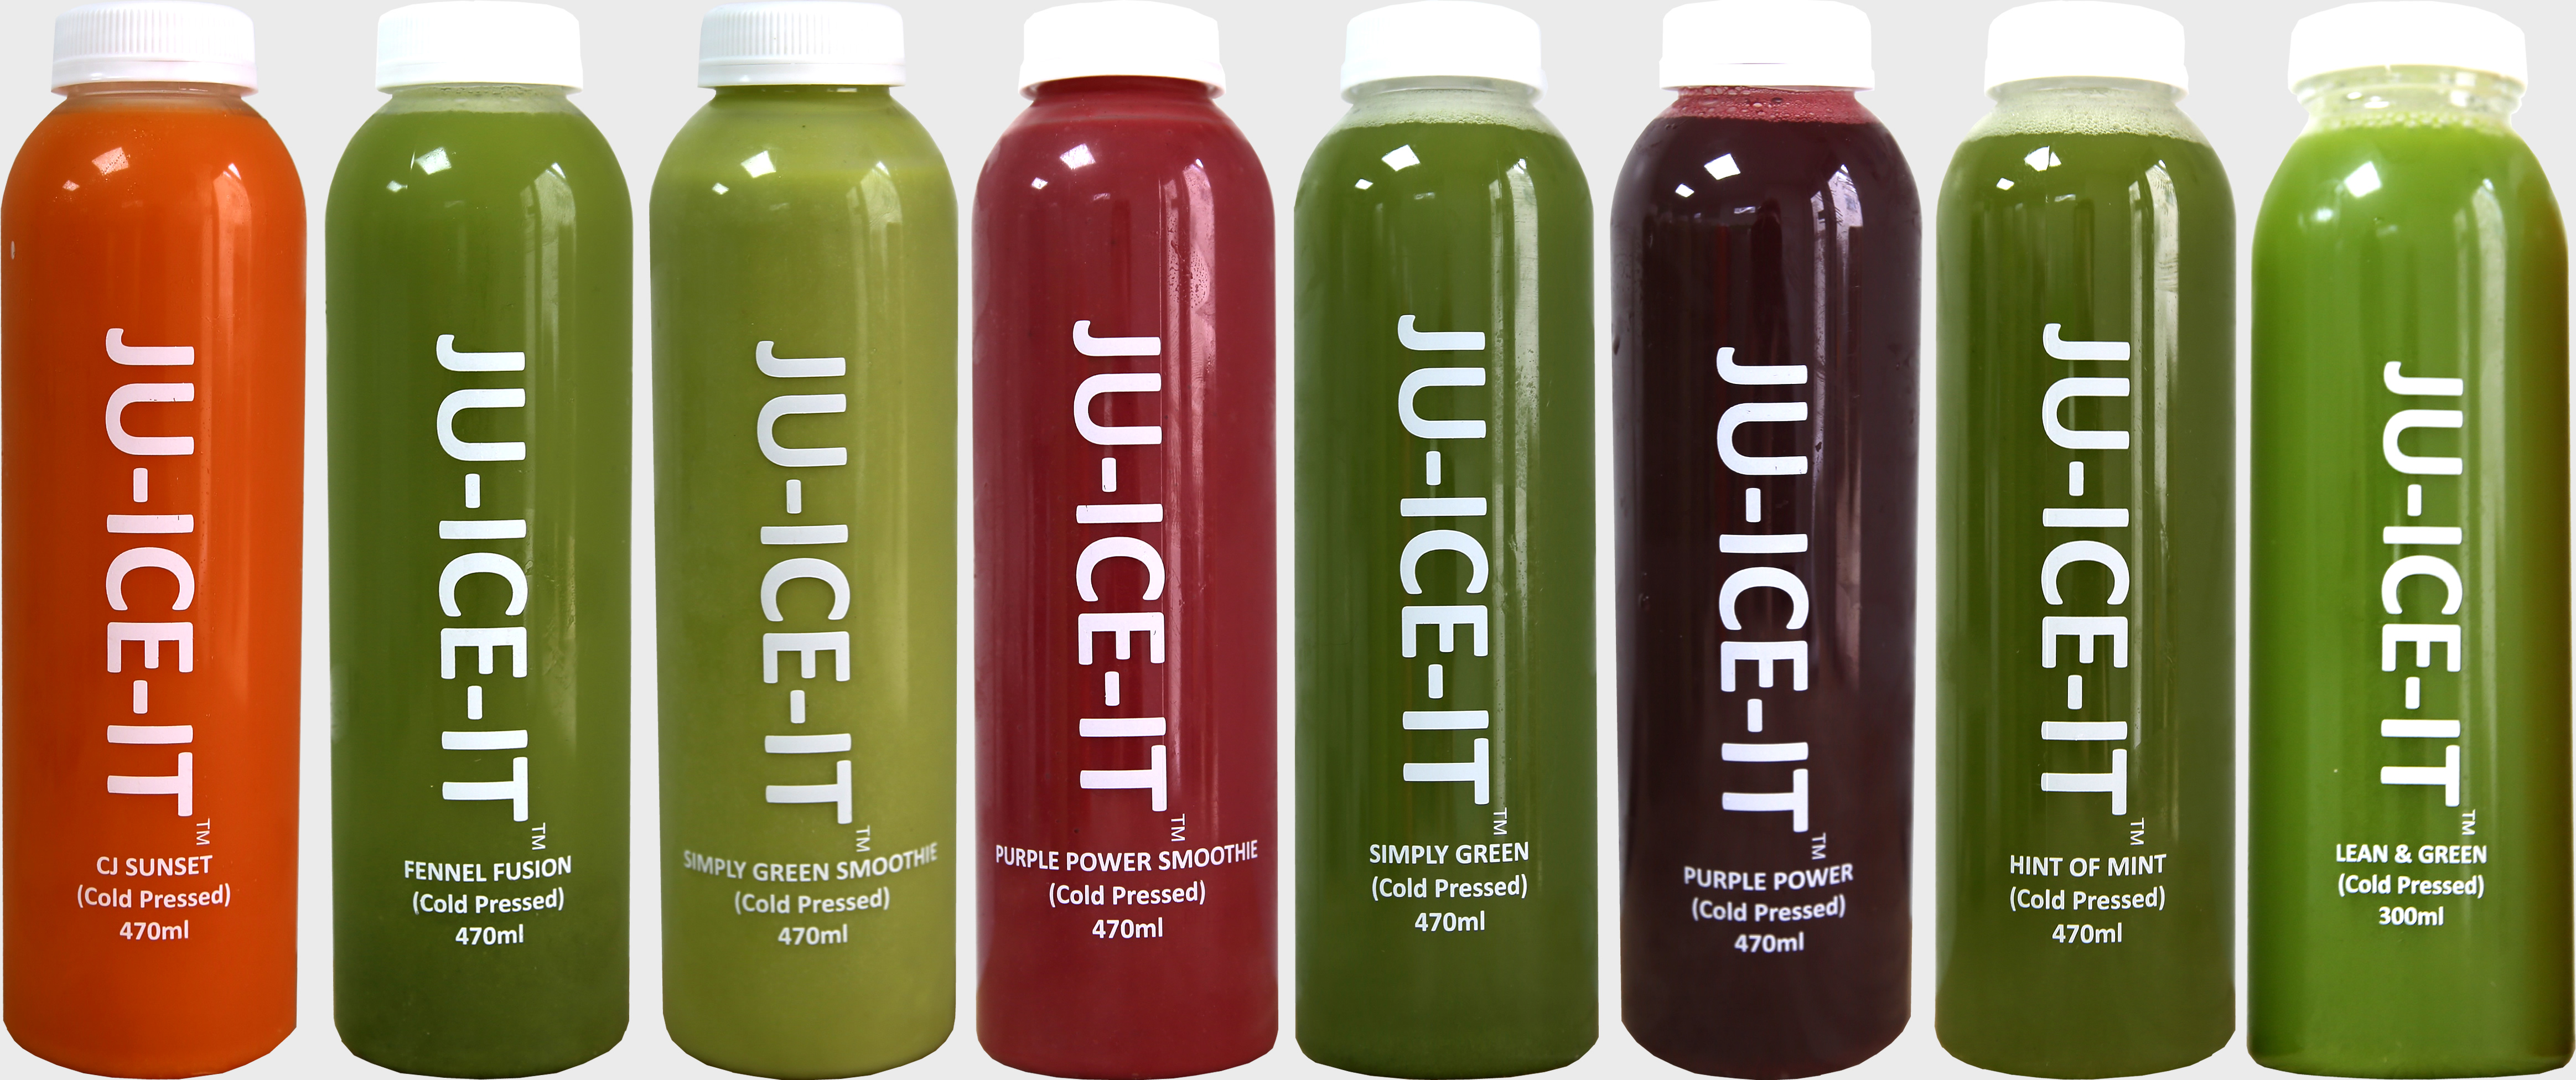 JU-ICE-IT PRoducts